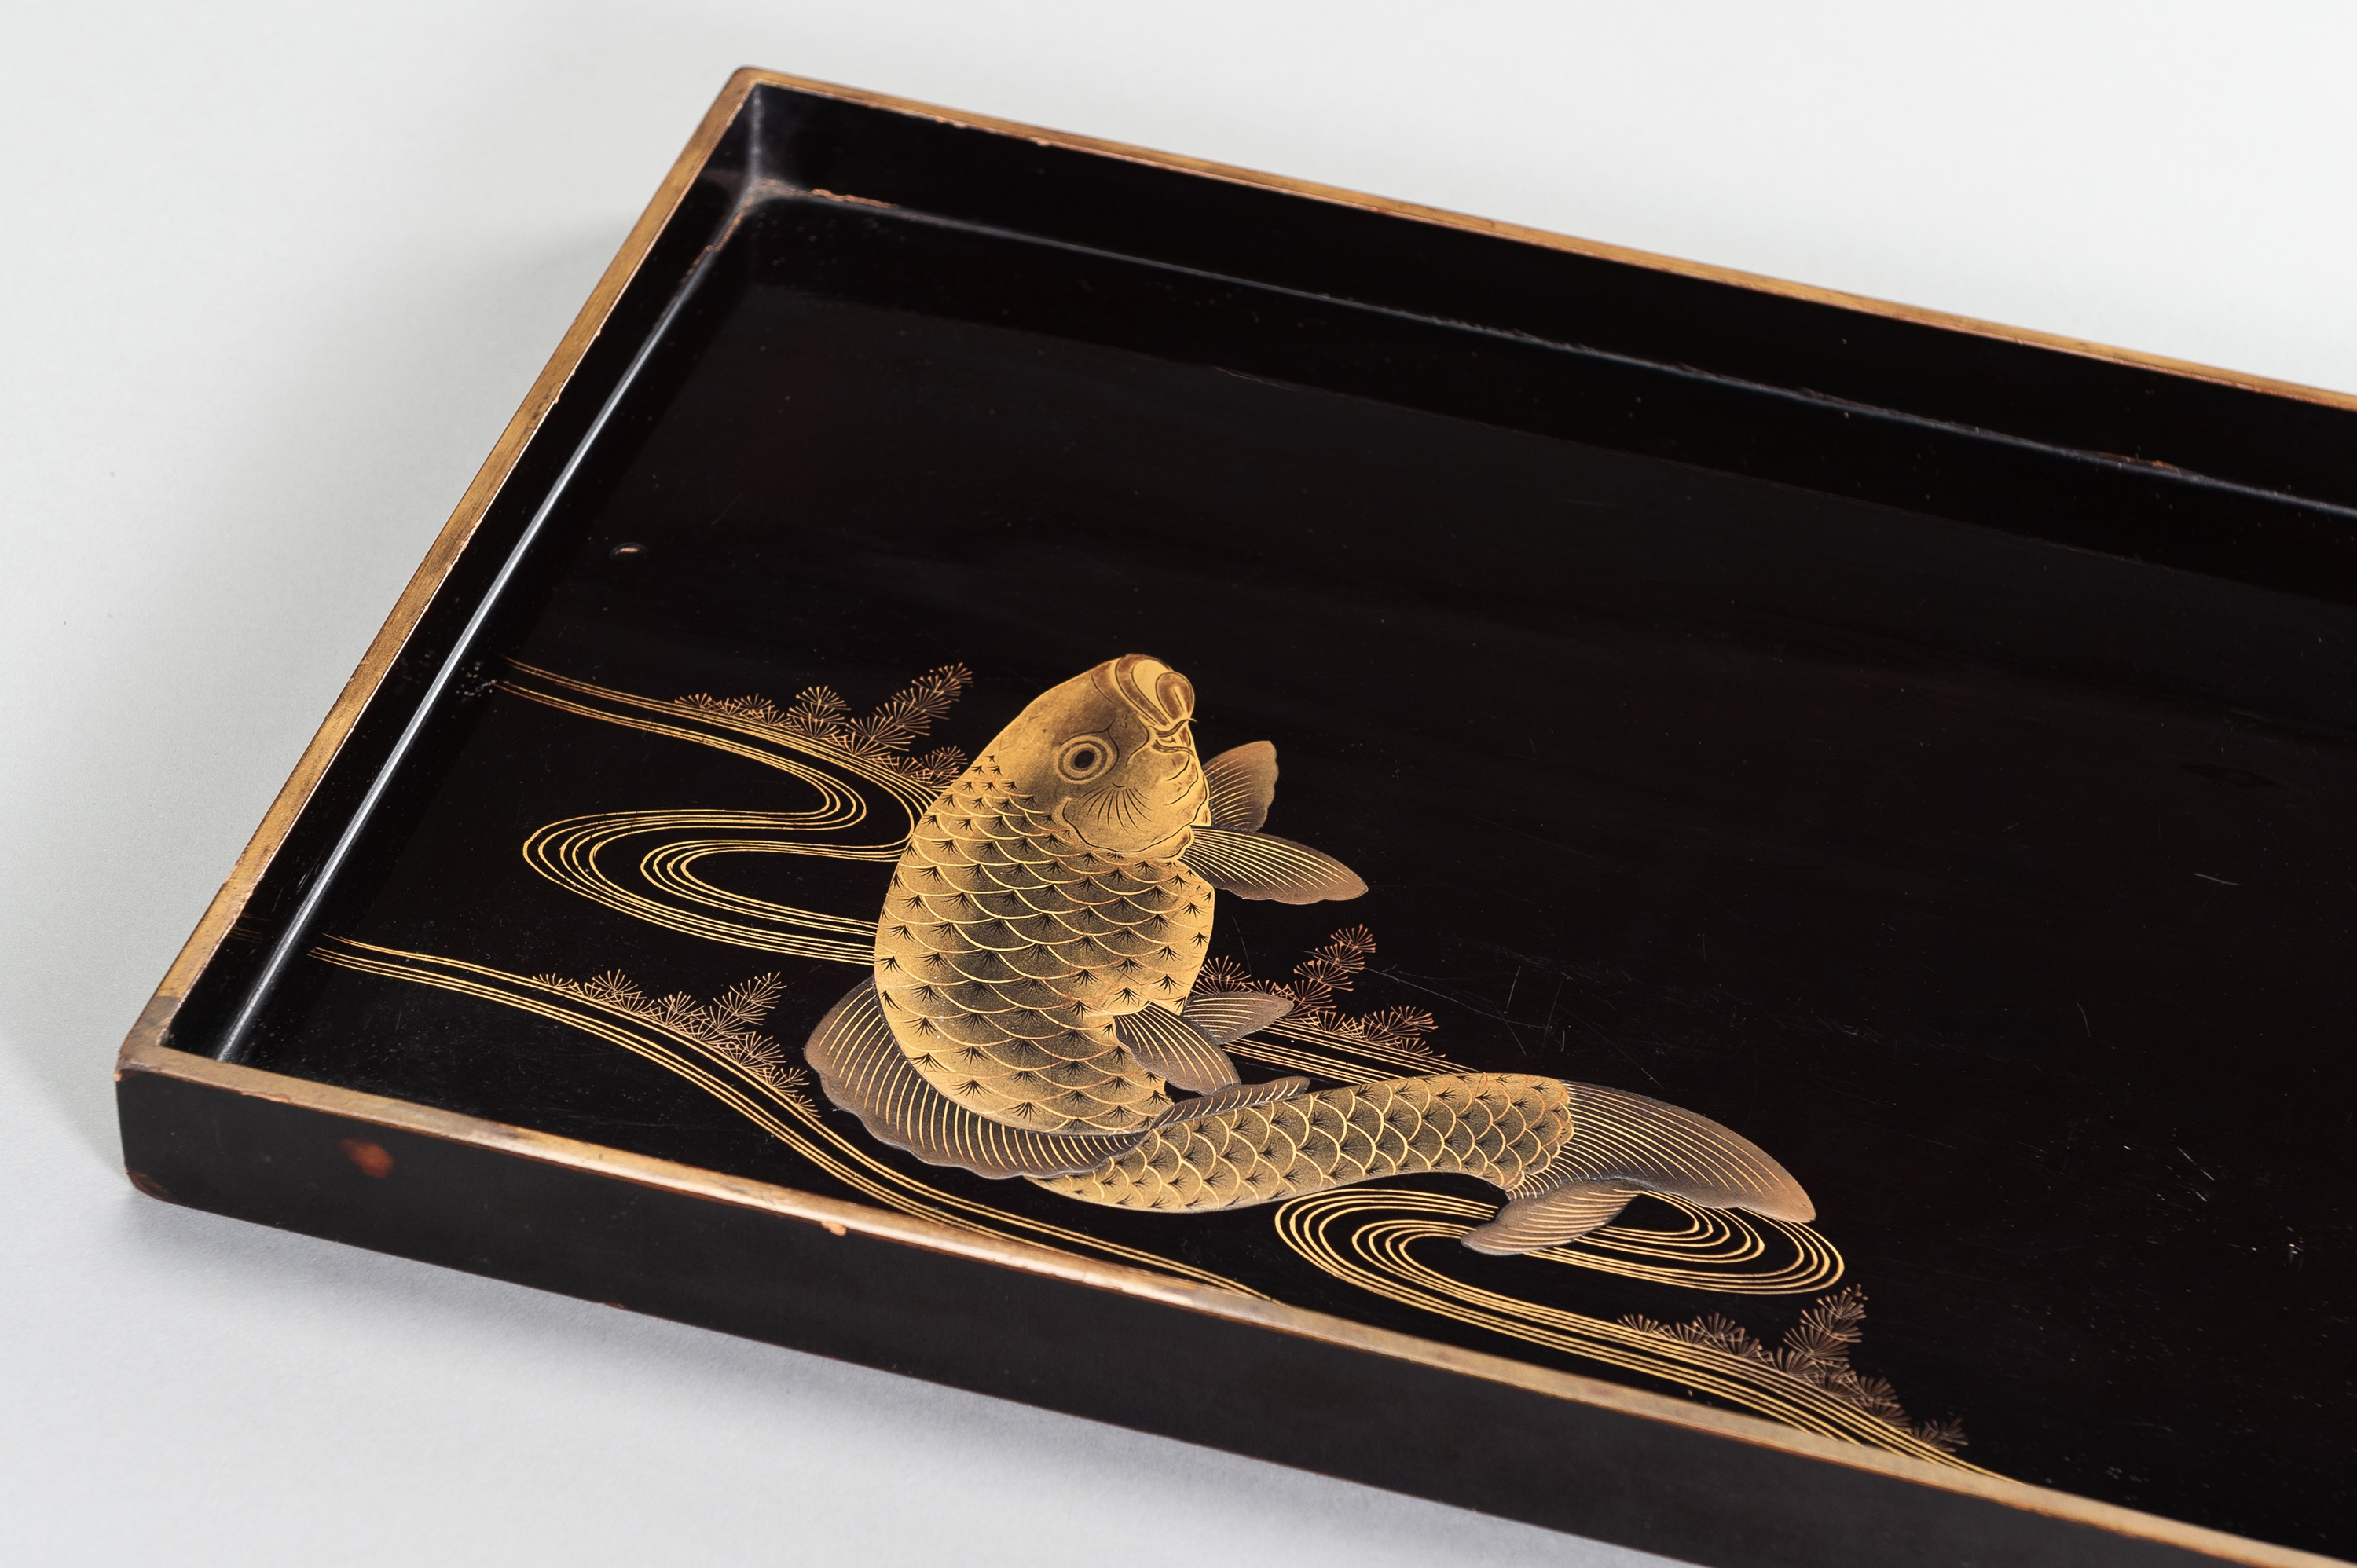 A LARGE LACQUER TRAY WITH CARP - Image 2 of 2